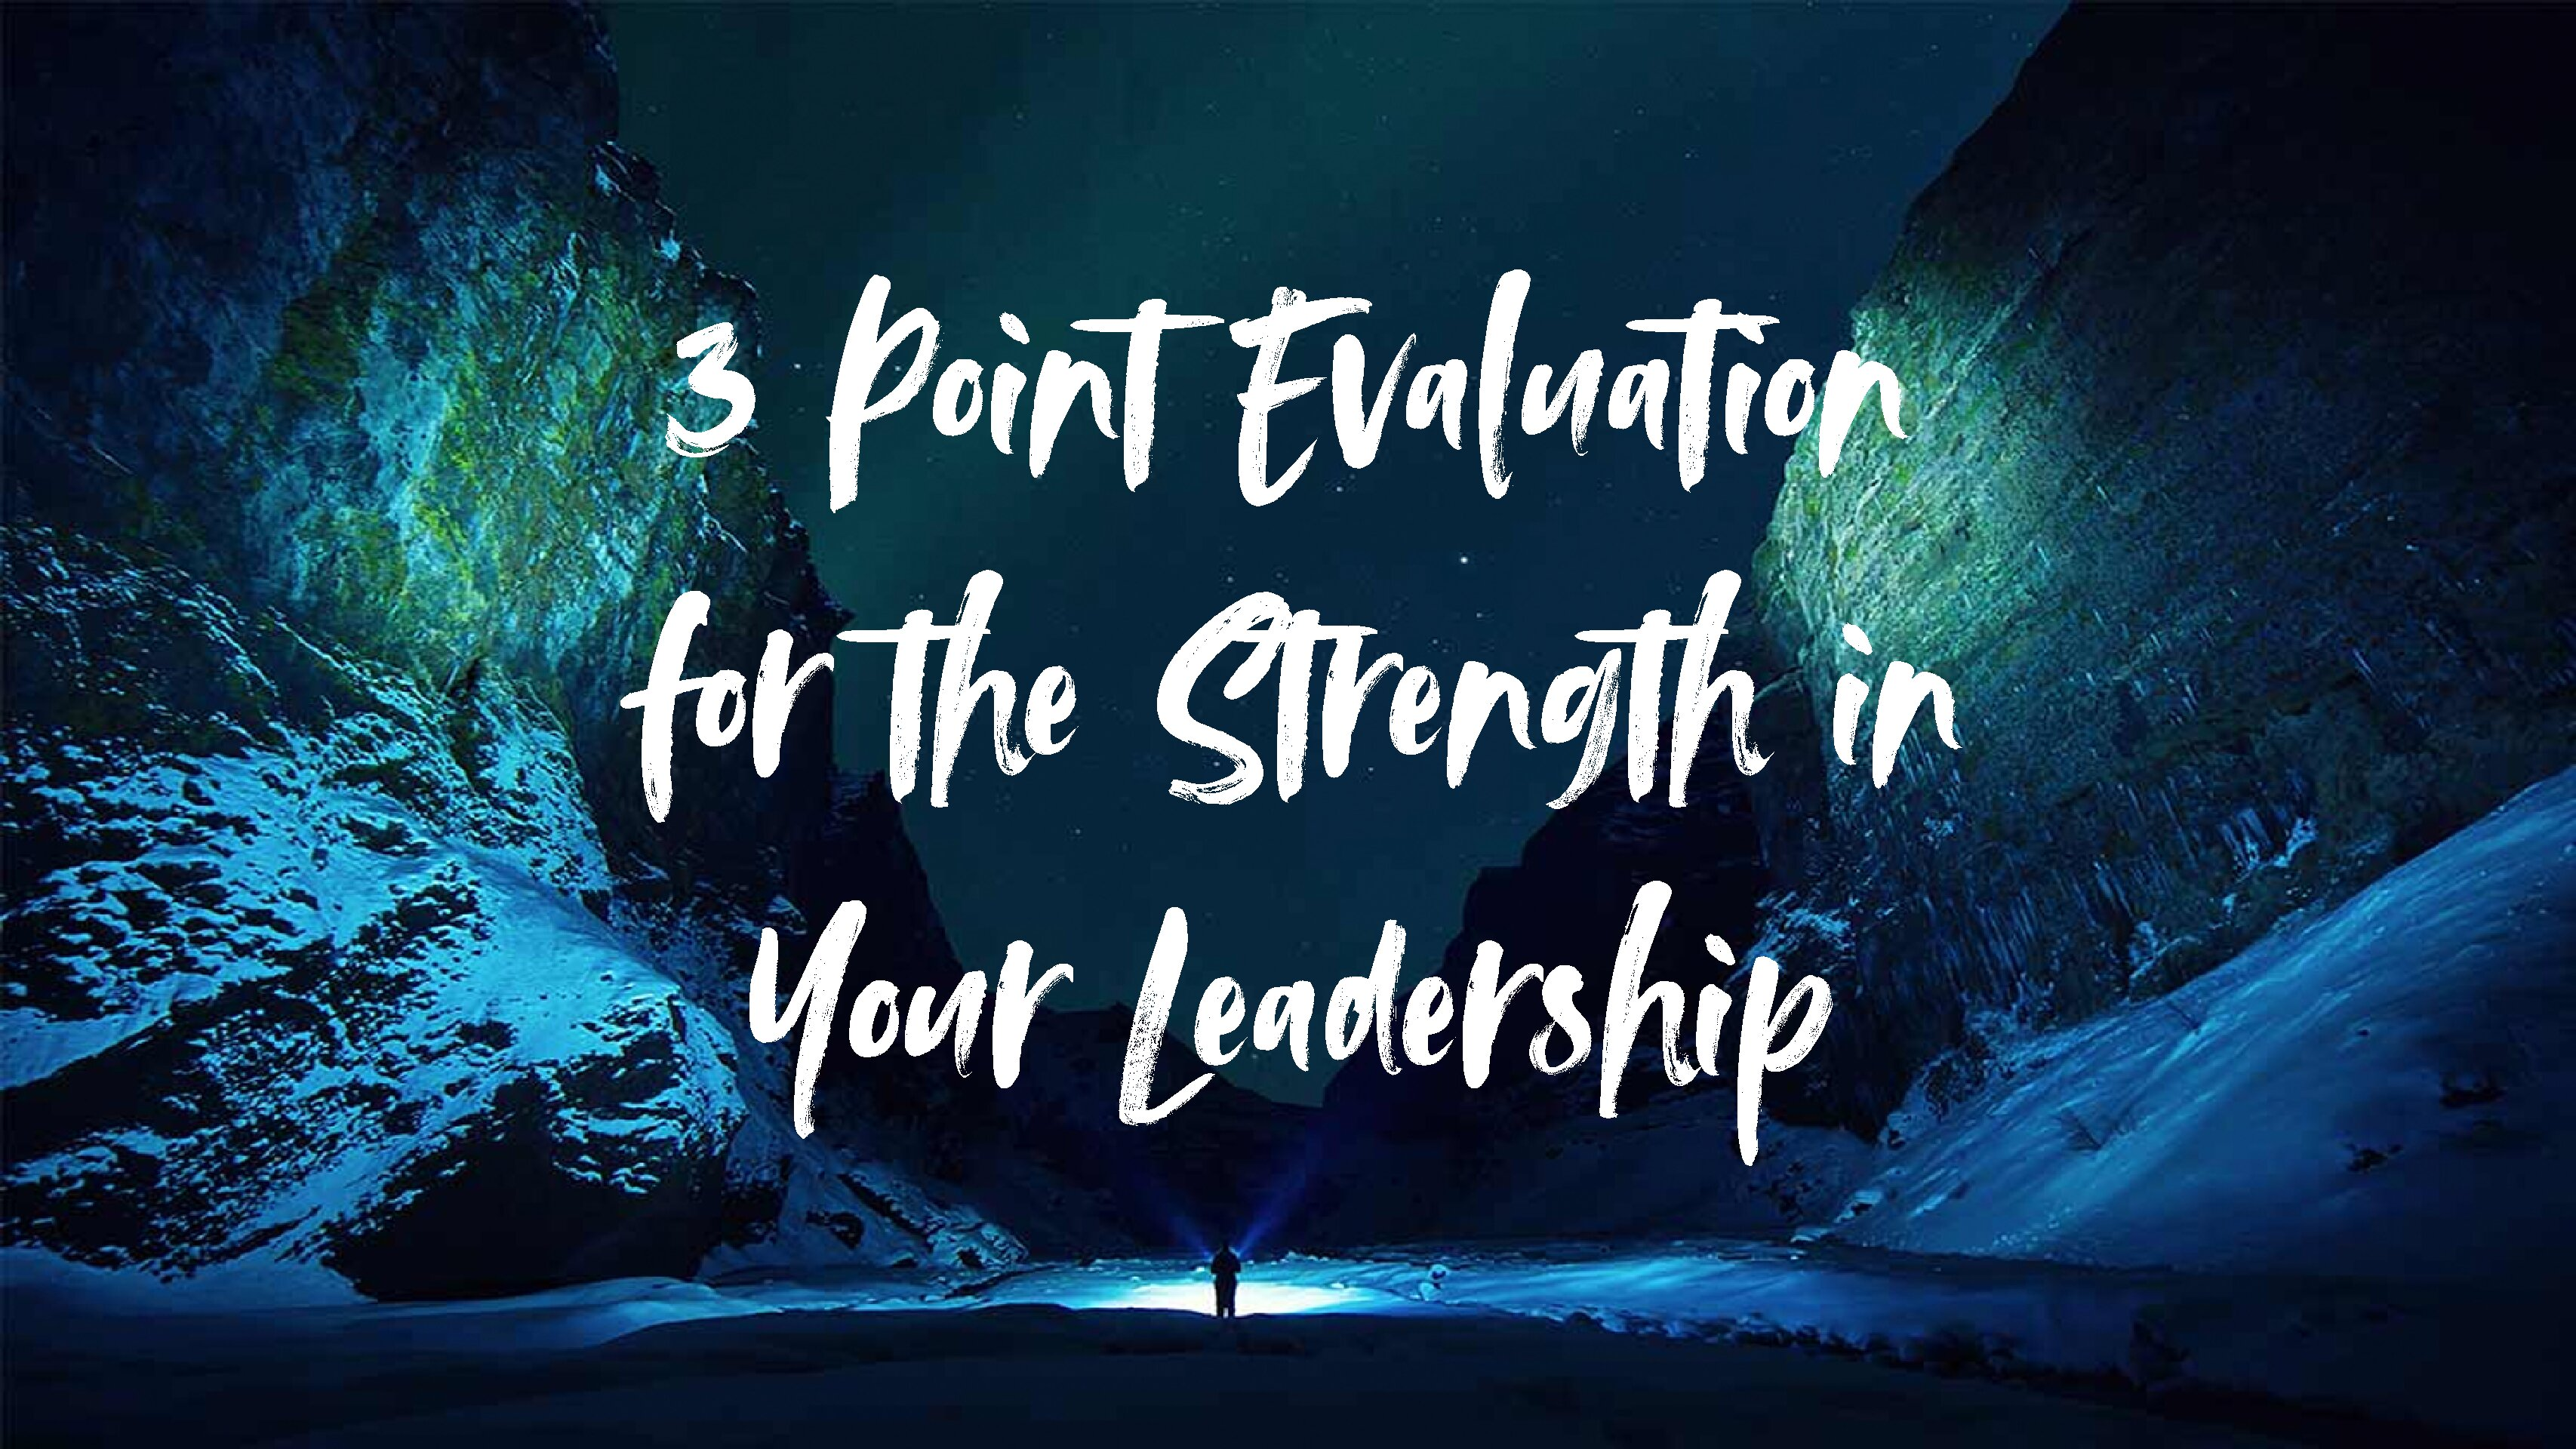 3 Point Evaluation for the Strength in Your Leadership